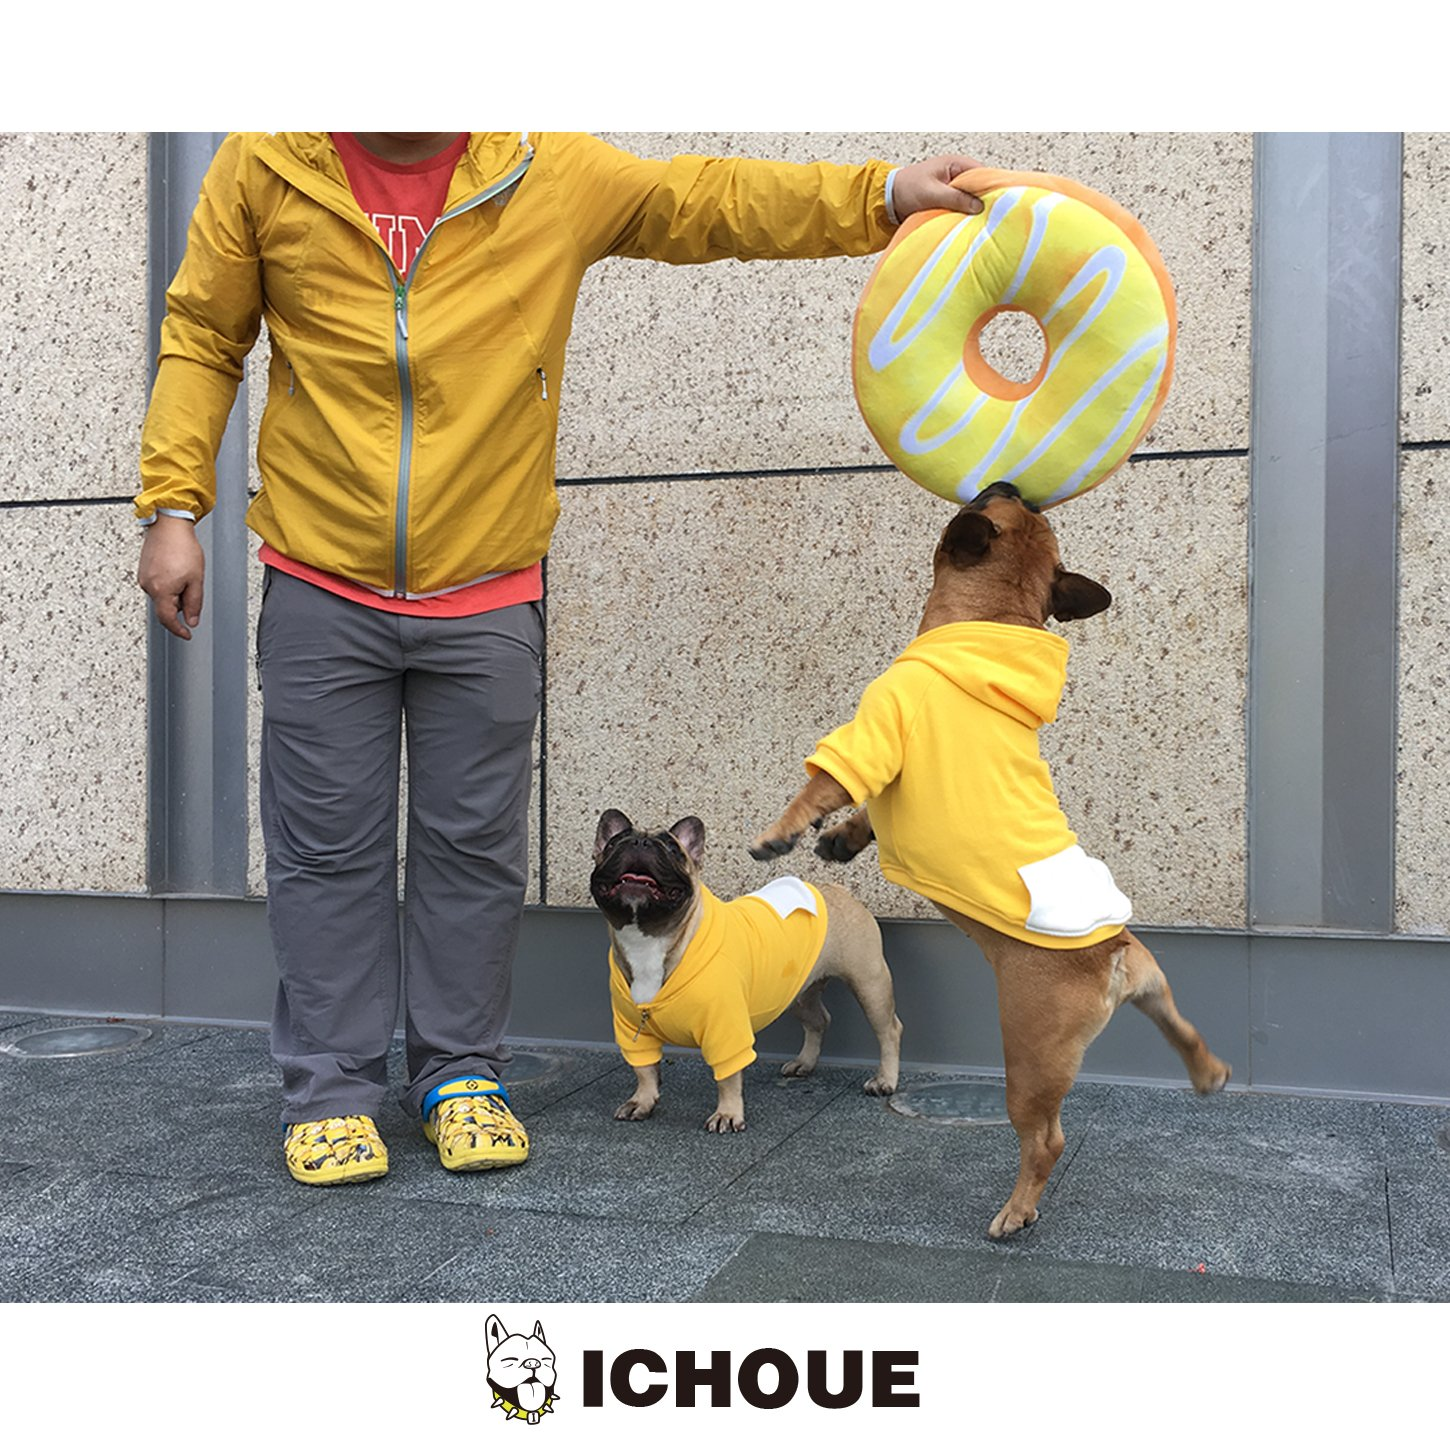 iChoue Pets Dog Clothes Hoodie Hooded French Bulldog Costume Pullover Cotton Winter Warm Coat Puppy Corgi Clothing - Yellow/Size M by iChoue (Image #8)